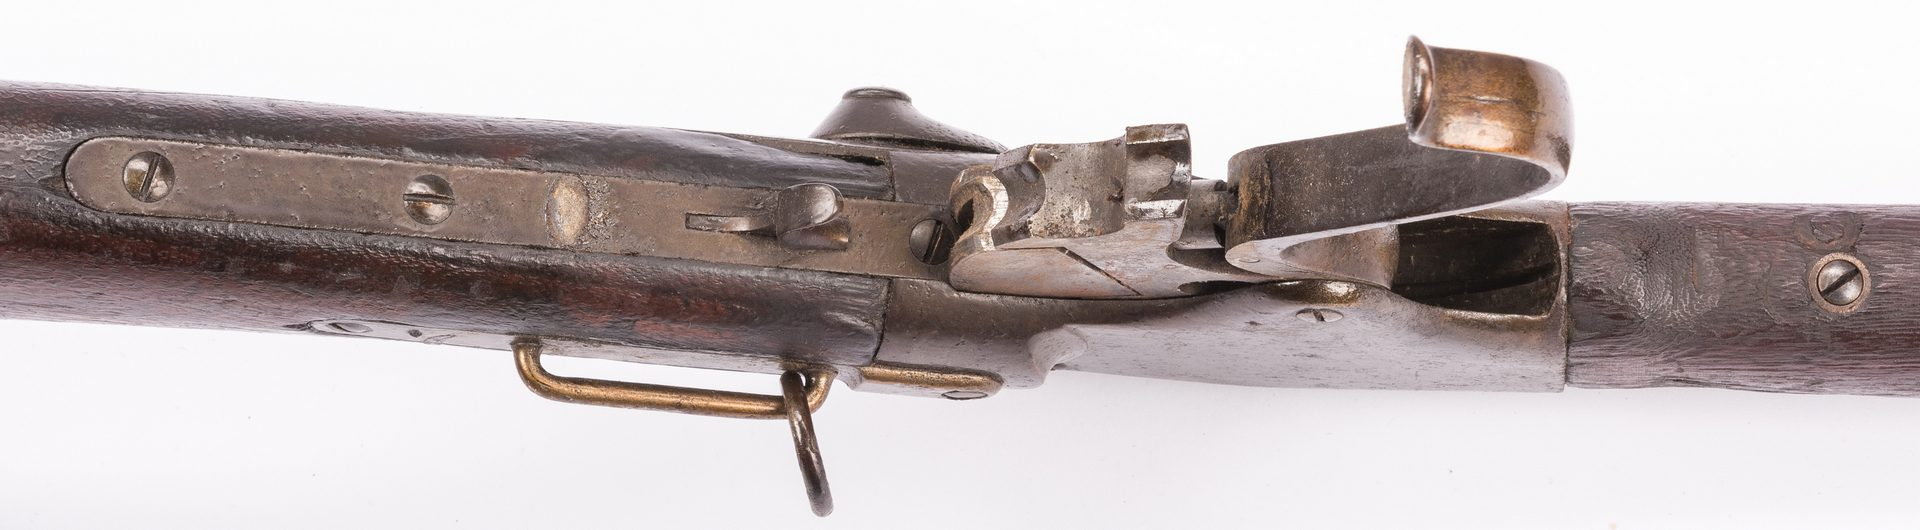 Lot 503: Civil War Model 1860 Spencer Repeating Carbine